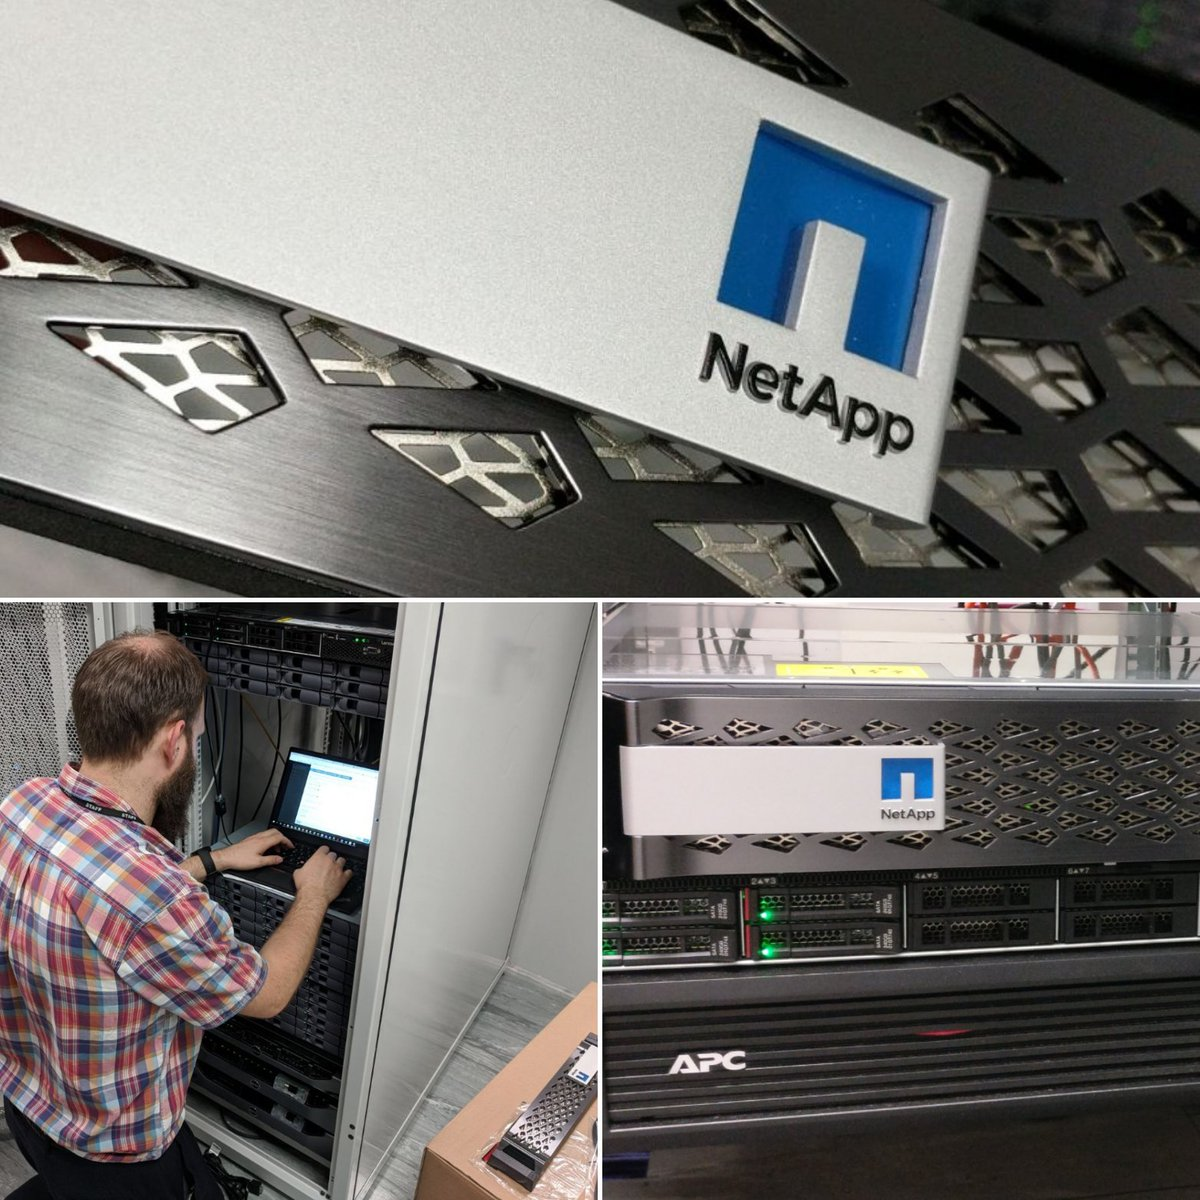 The perfect way to end Friday 2x @NetApp E-Series install done. Don't let the 2U size fool you these little E-Series boxes offer affordable performance and are simple to setup and use. Perfect as a @veeam backup destination. @svennerski #NetAppATeam #DataDriven